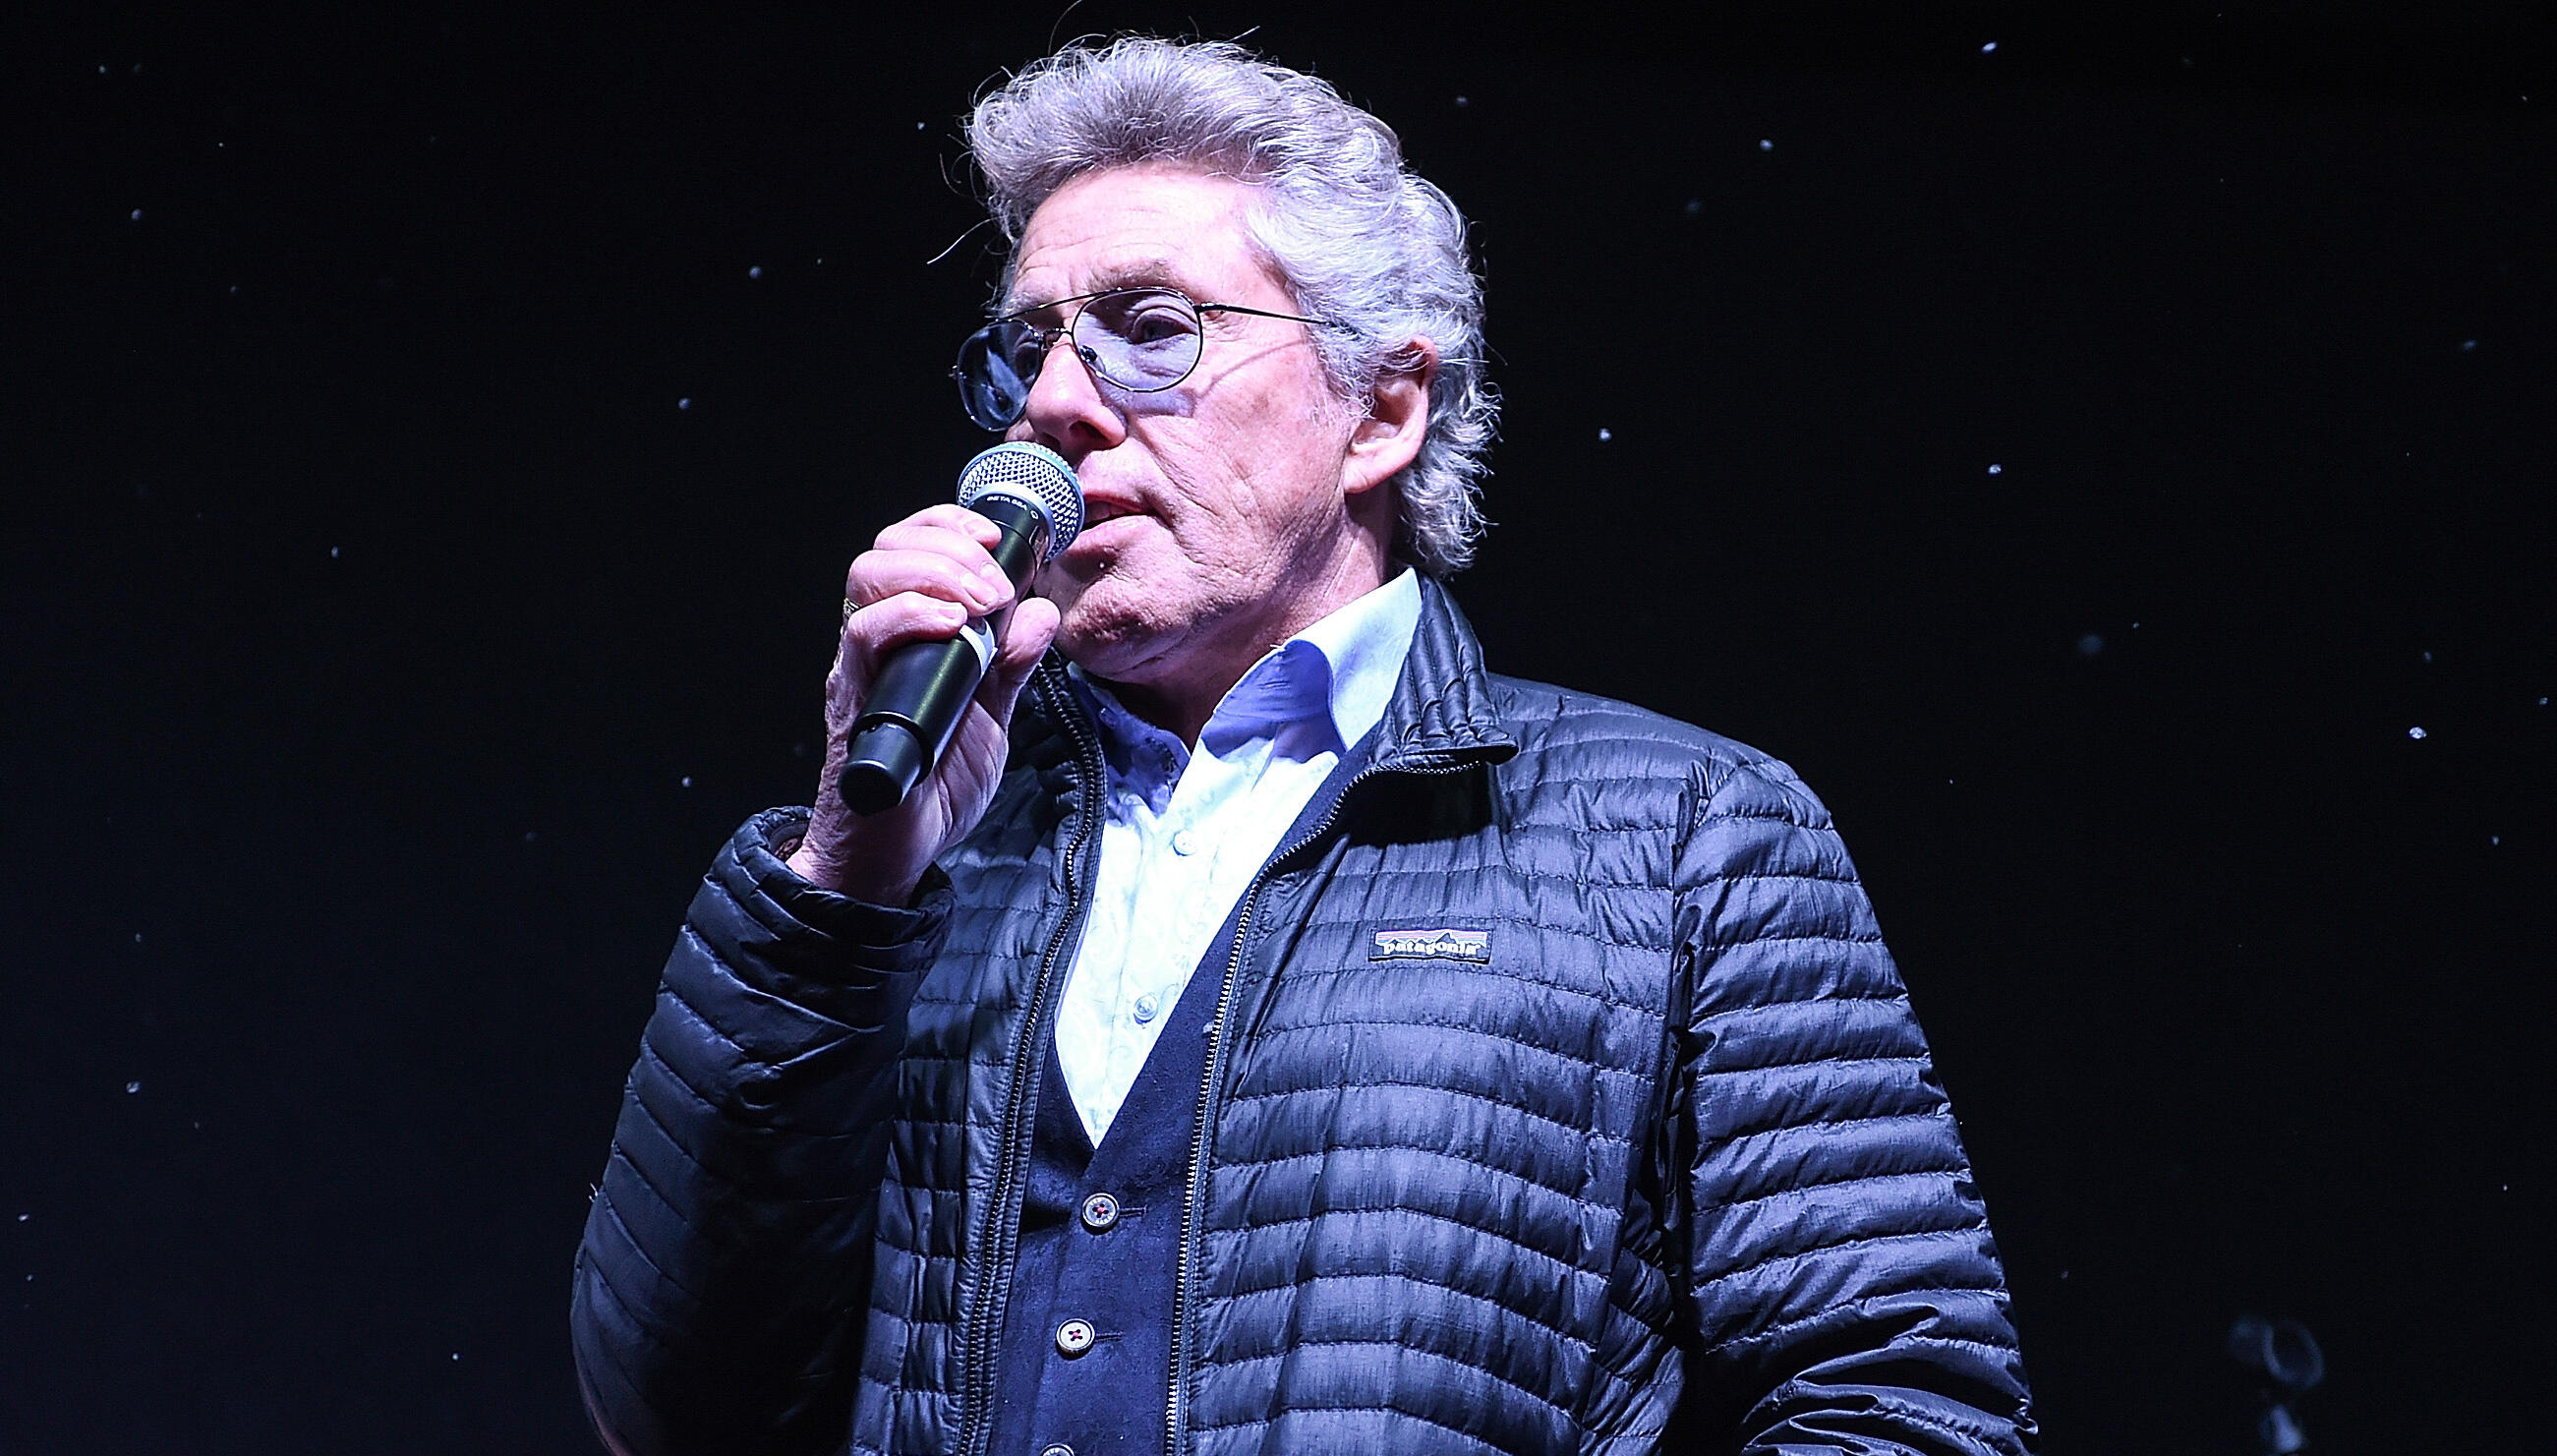 The Who's Roger Daltrey Cancels U.S. Solo Tour Scheduled For August